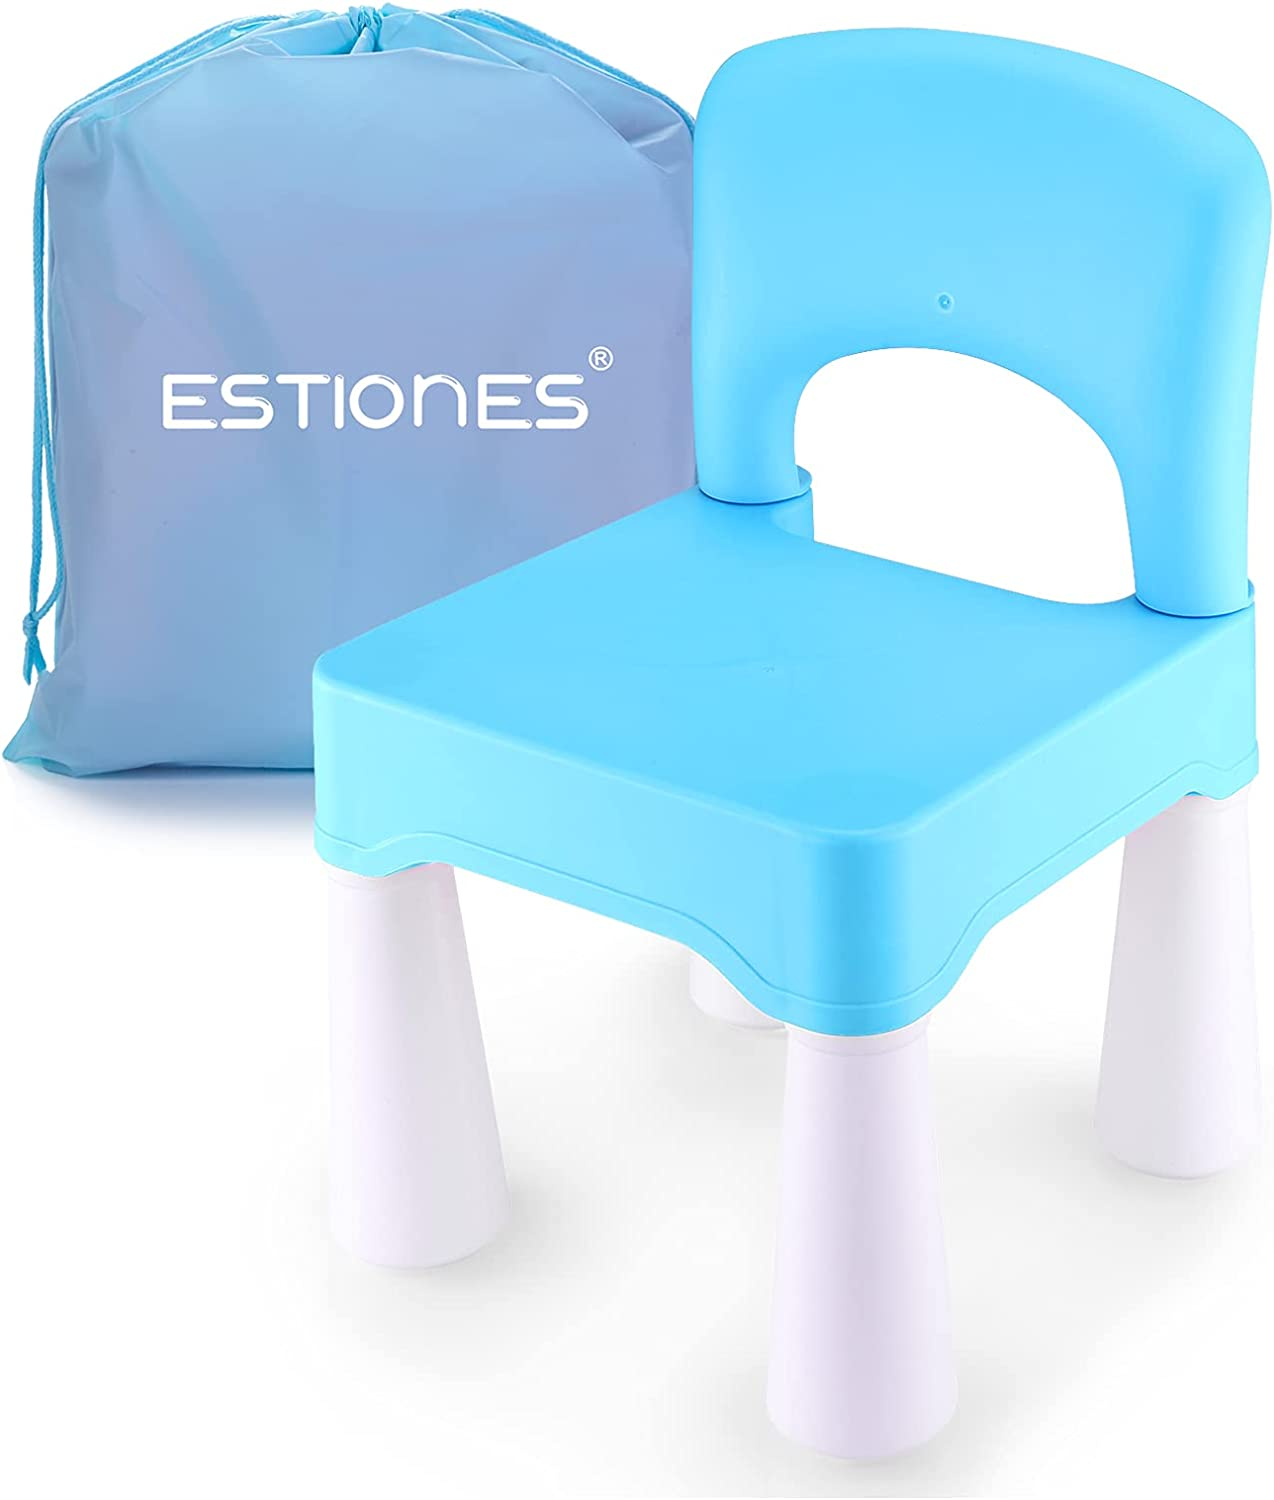 ESTIONES Kids Chair, Toddler Chair, Toddler Chairs for Boys and Girls, an Extra Portable Storage Bag, Ergonomic Design, Environmentally Friendly Durable Plastic (Sky Blue)